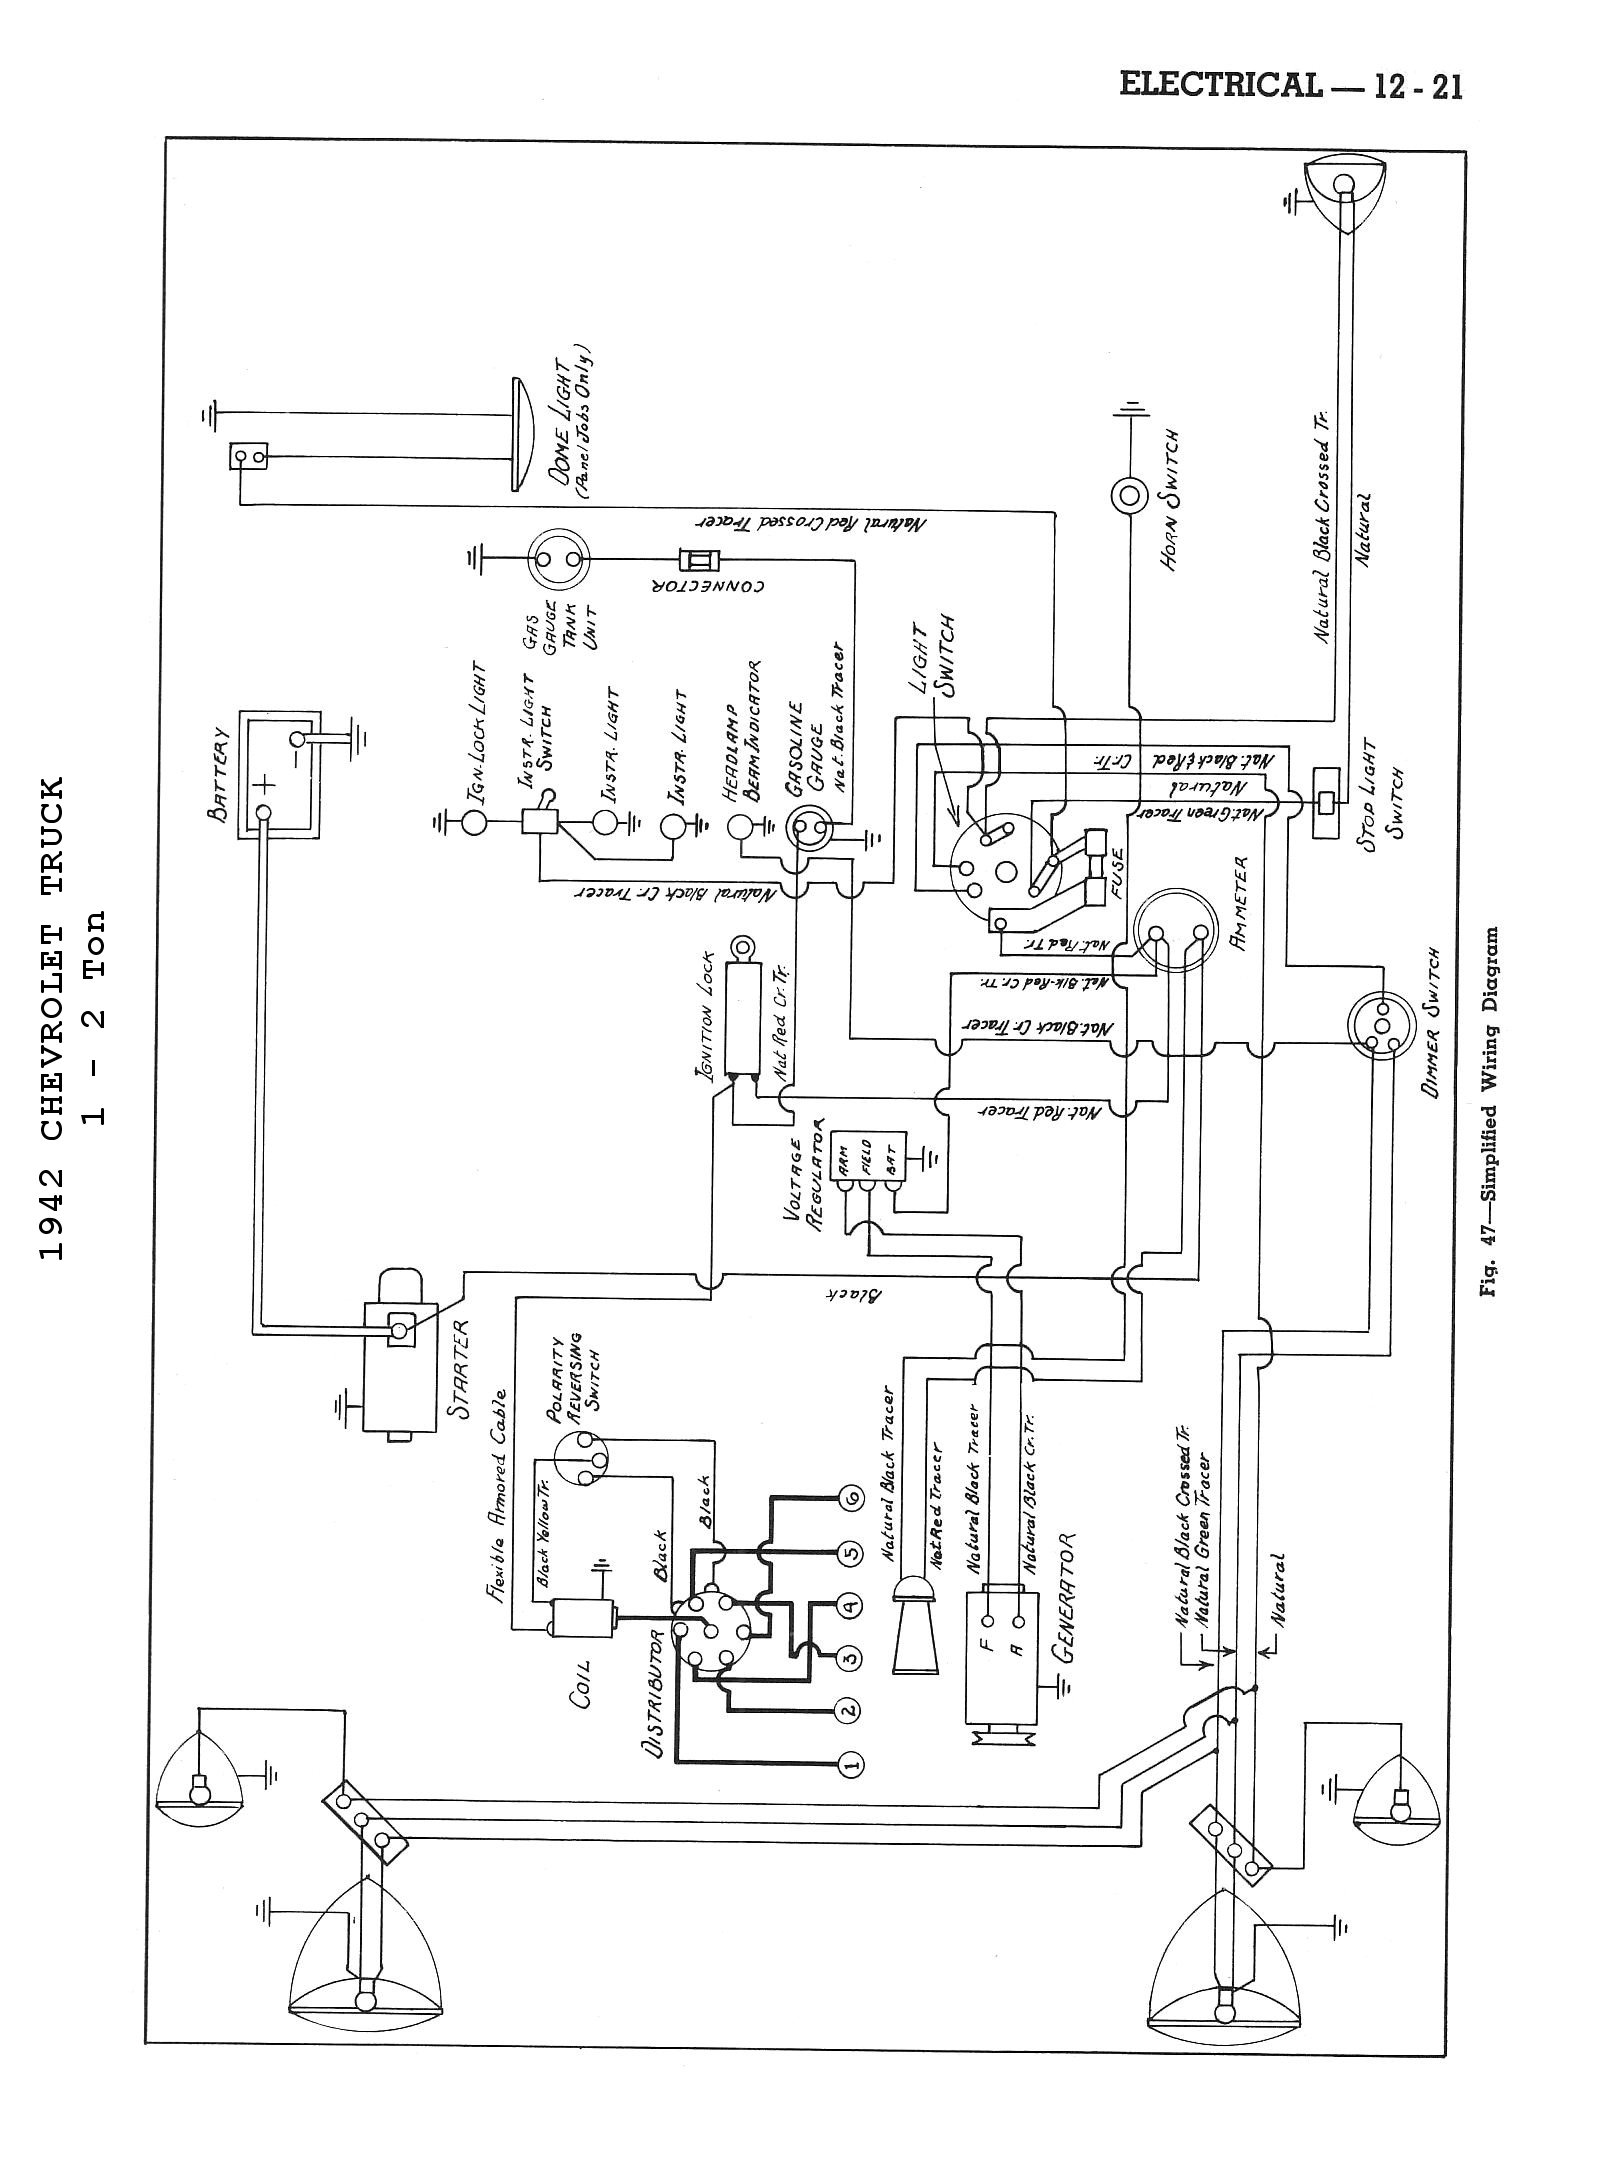 chevy wiring diagrams rh chevy oldcarmanualproject com 1953 Chevy Truck Wiring Diagram 1951 Chevy Truck Wiring Diagram